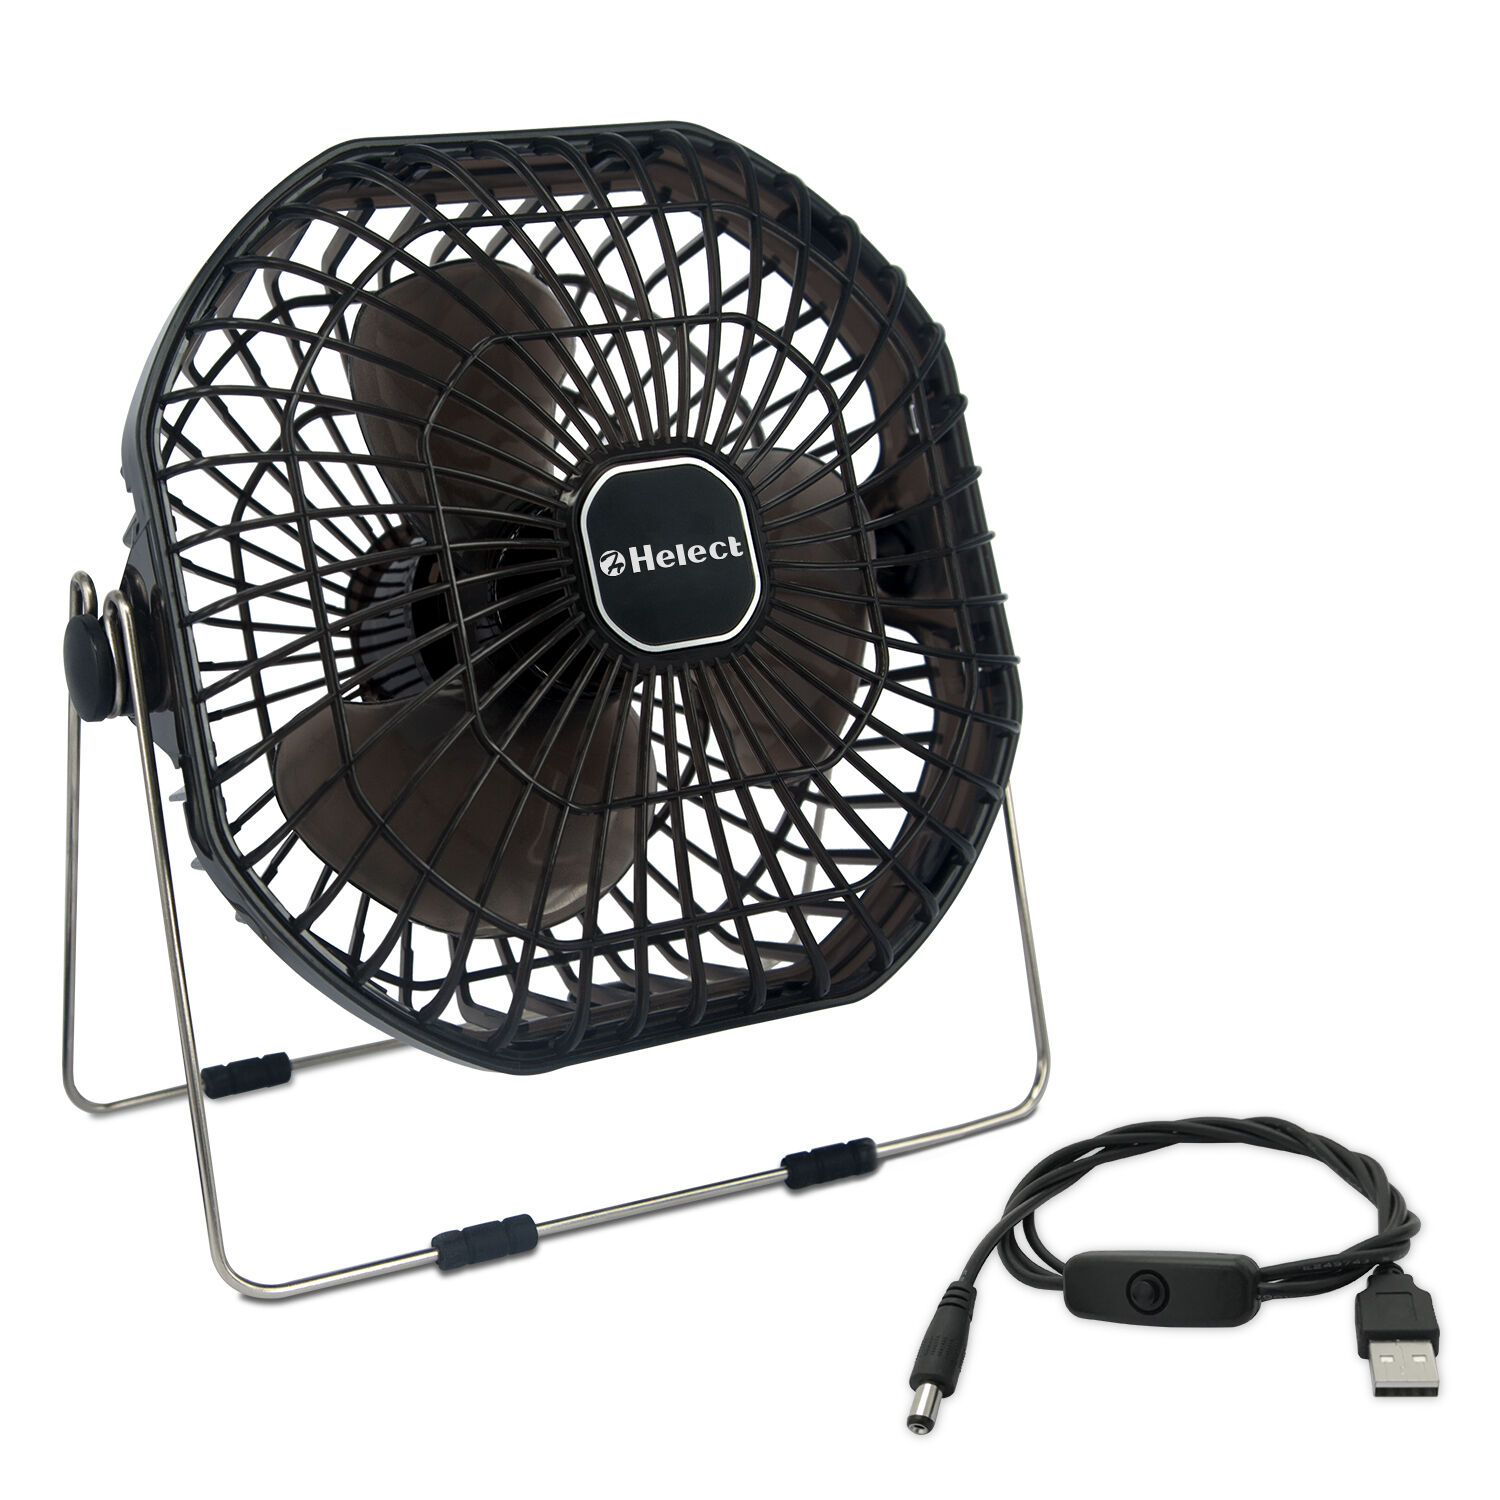 Helect 7-Inch Mini USB Desk Fan with Low Noise and Strong Ai